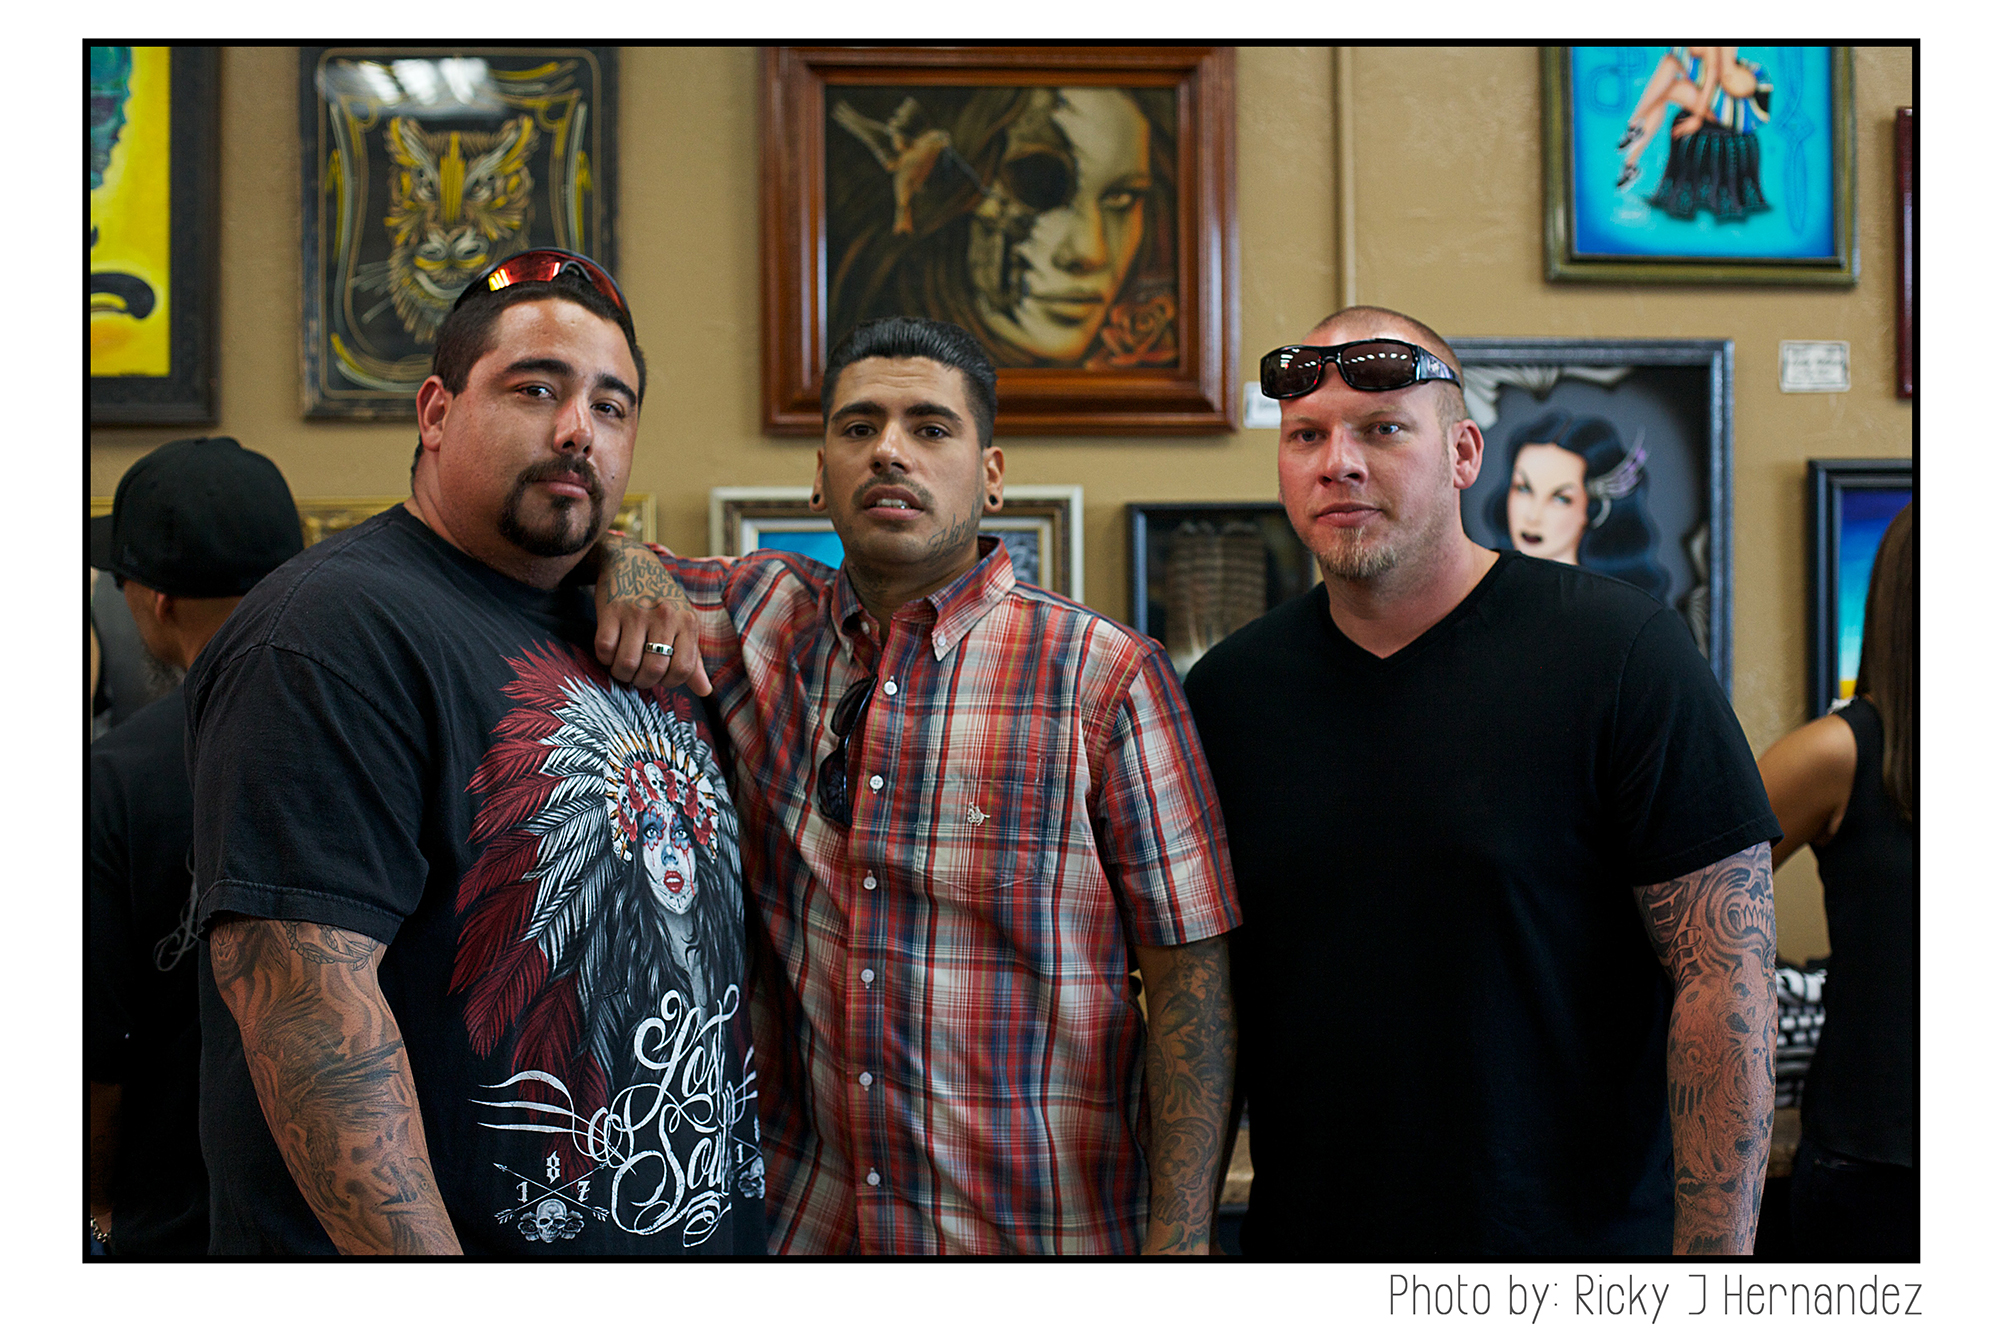 Mi familia facebook tattoo pictures to pin on pinterest for Tattoo shops in anaheim ca